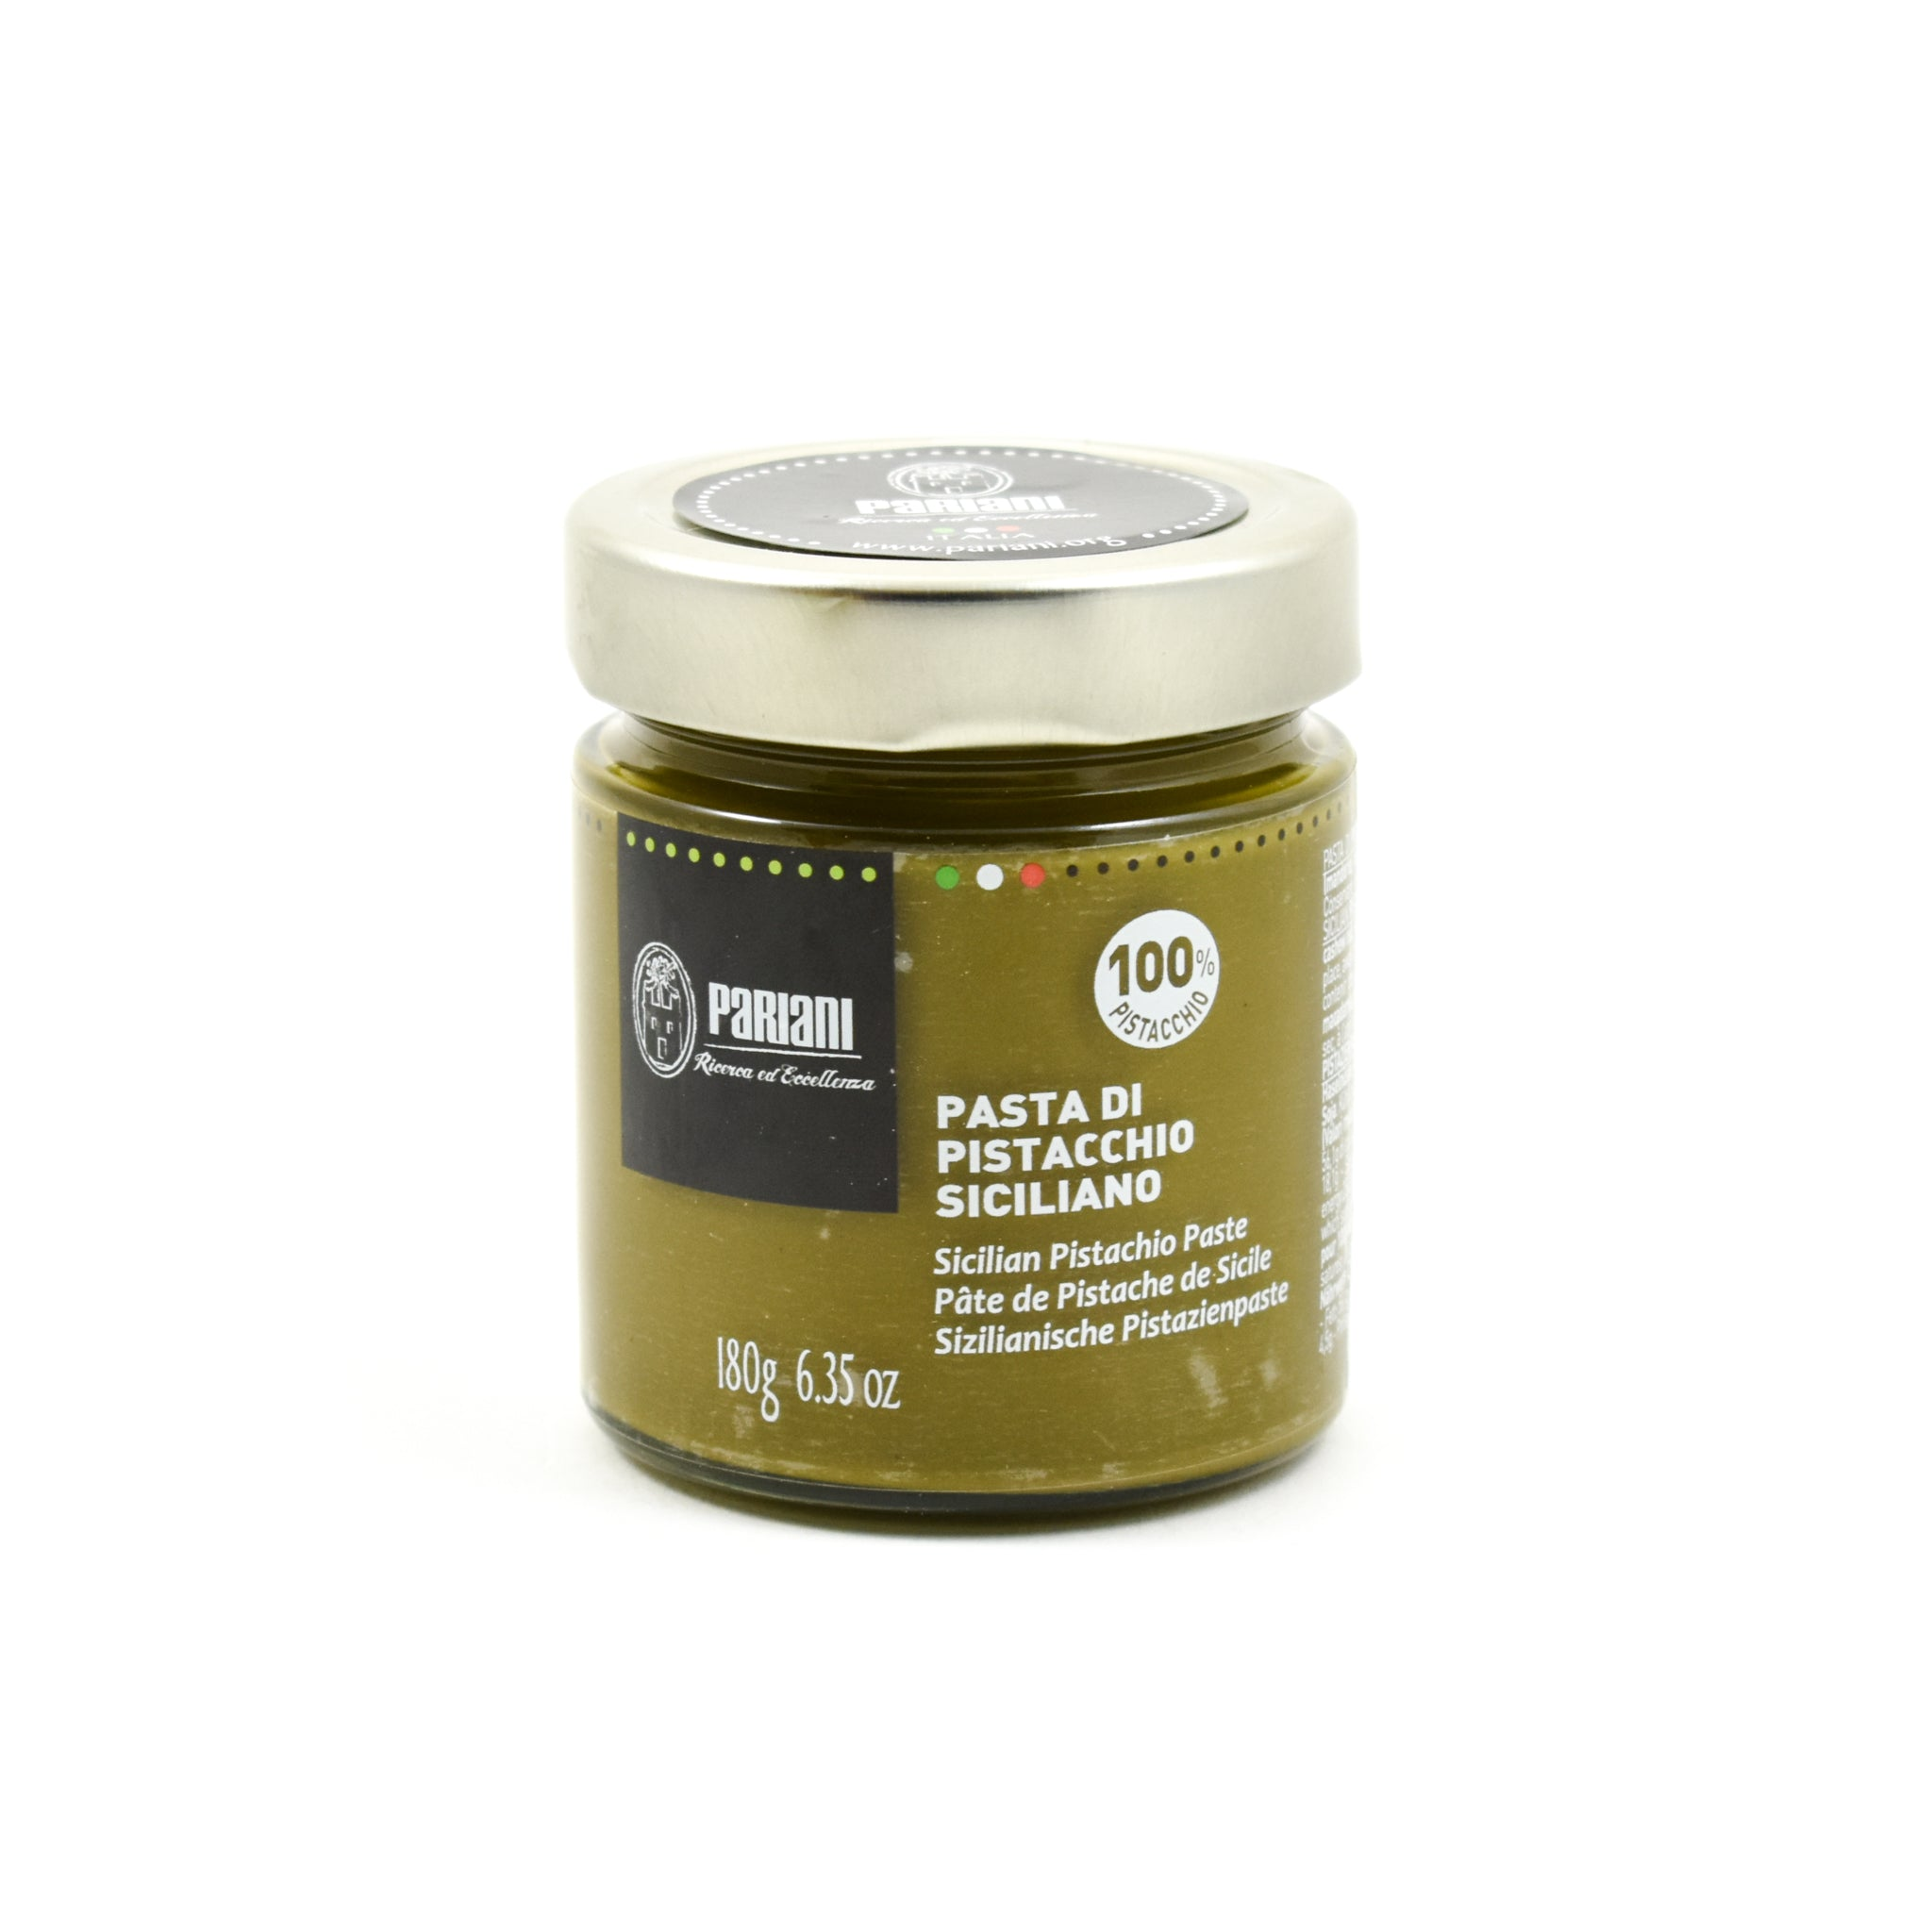 Pariani Pure Sicilian Pistachio Paste 180g Ingredients Baking Ingredients Baking Nuts & Nut Pastes Italian Food